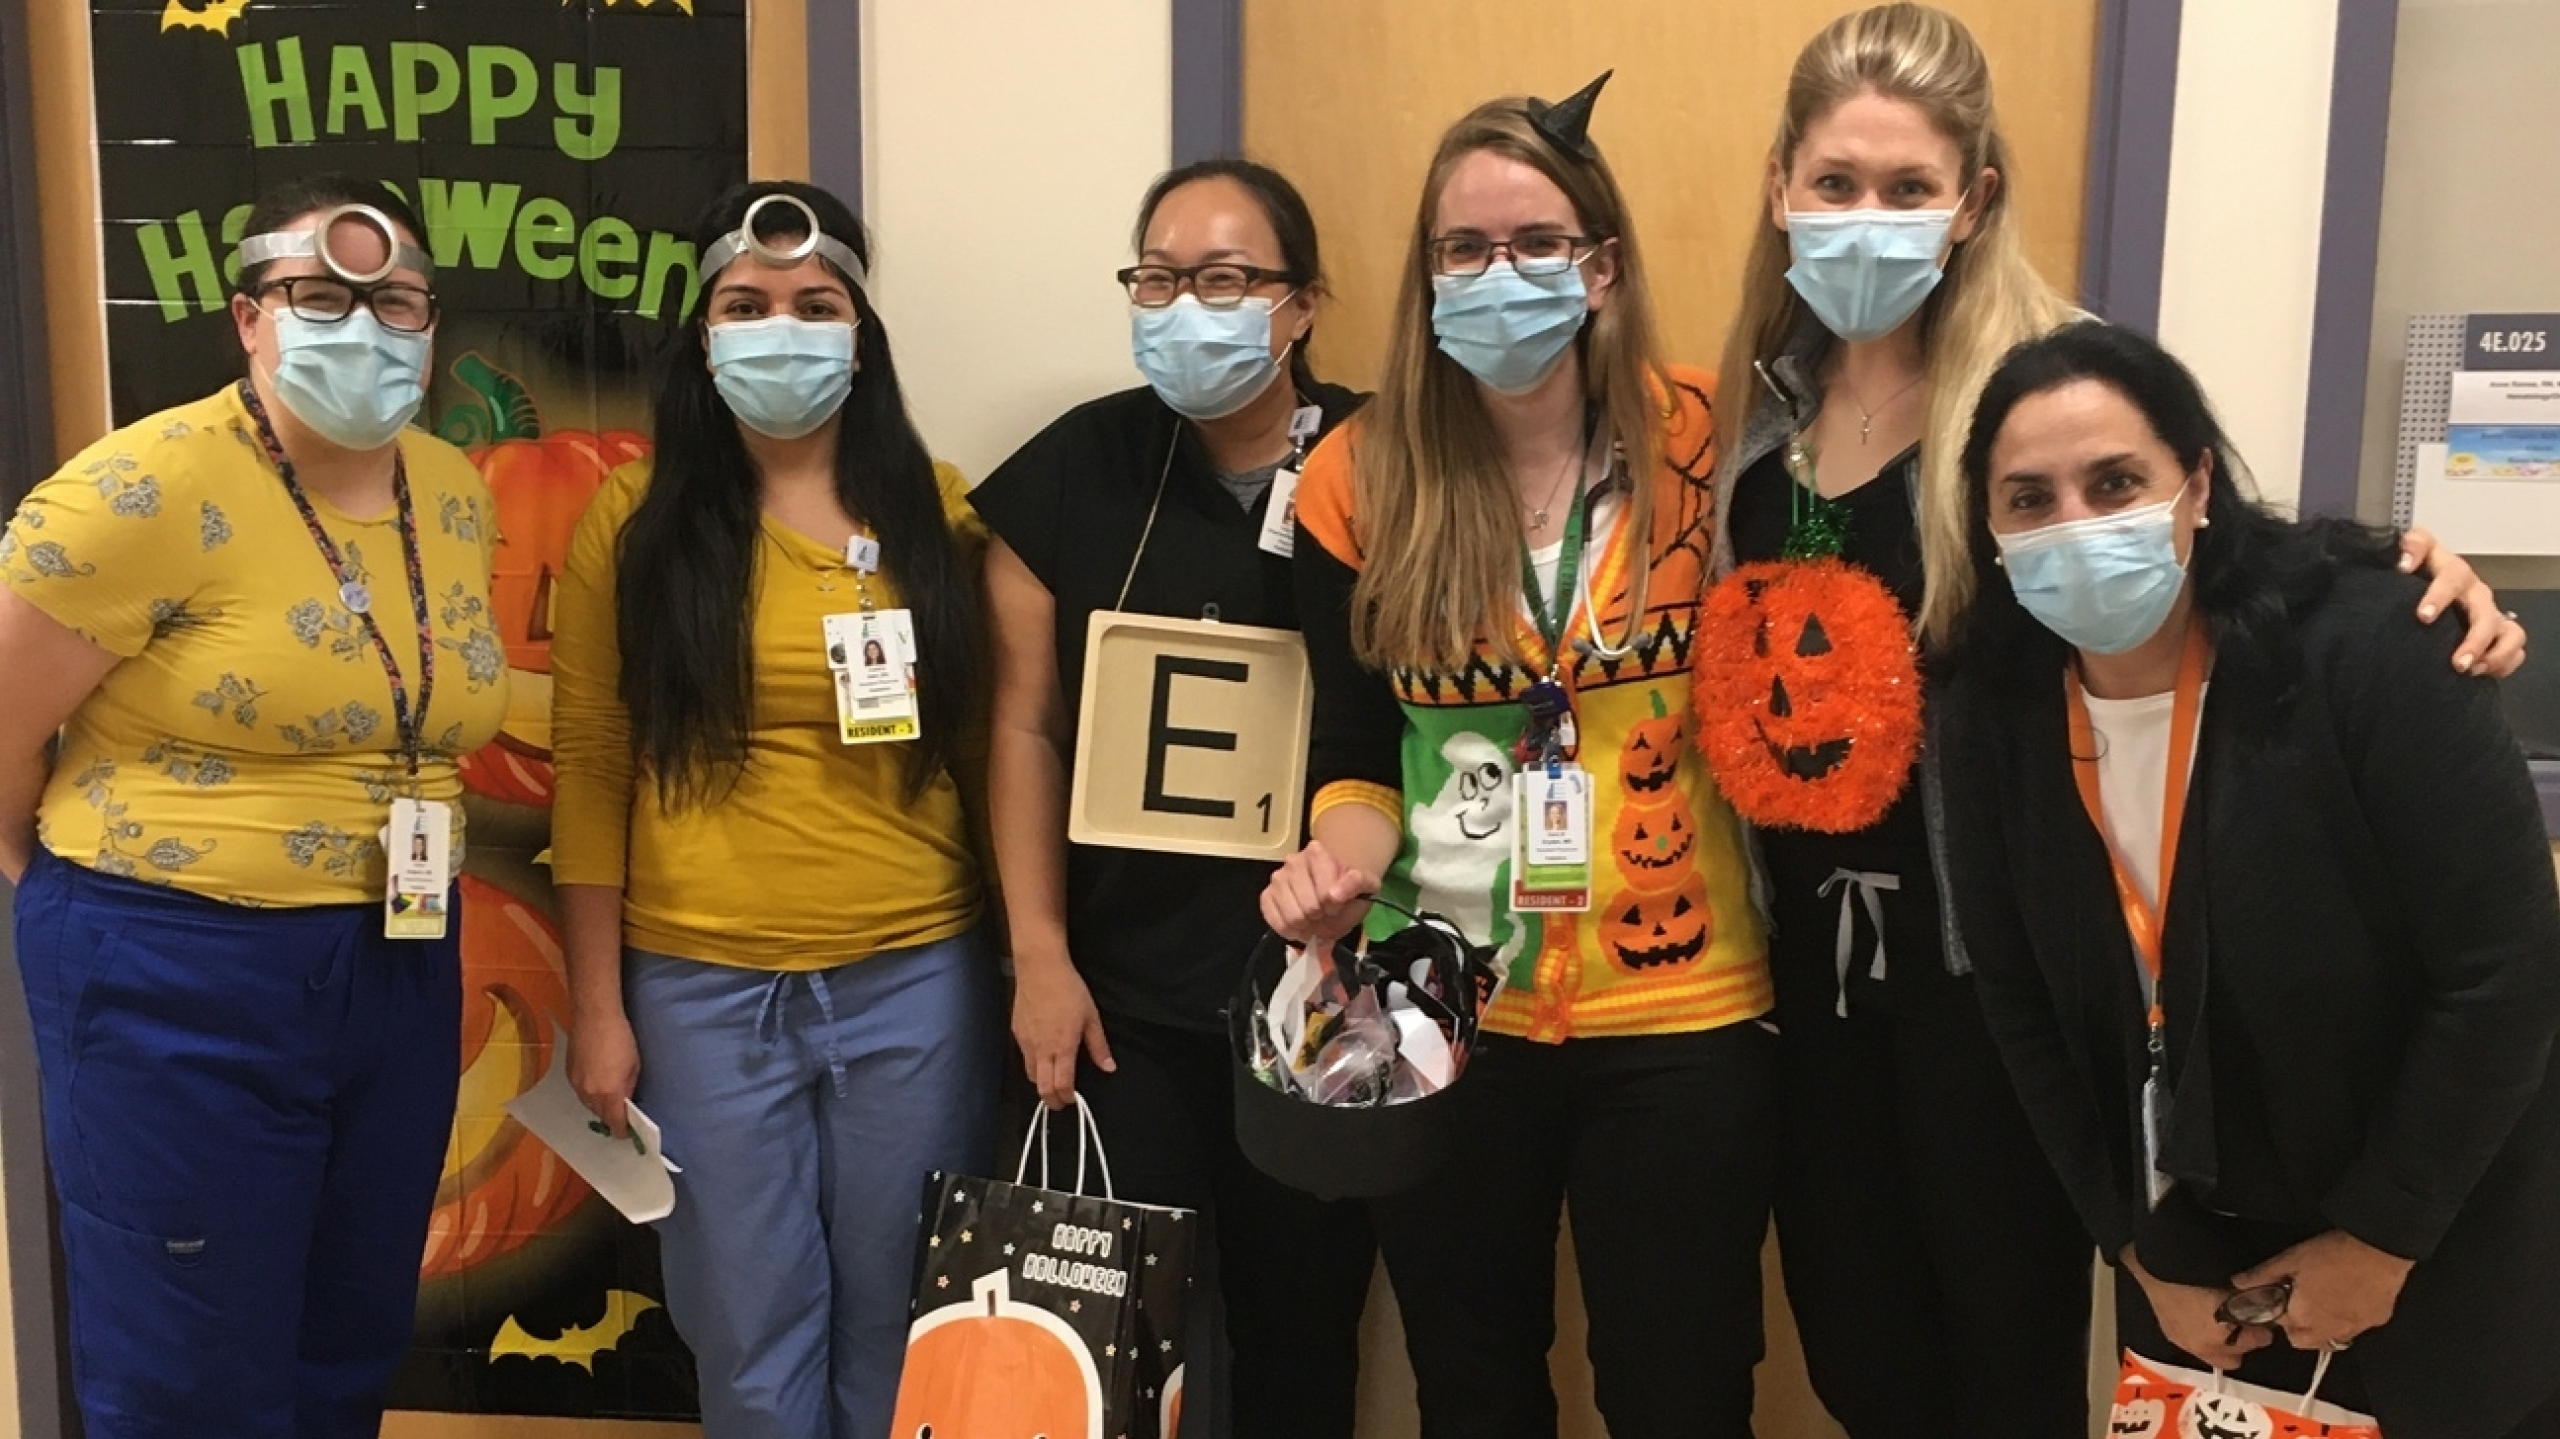 Pediatrics residents and faculty in a group during their reverse trick-or-treat parade.